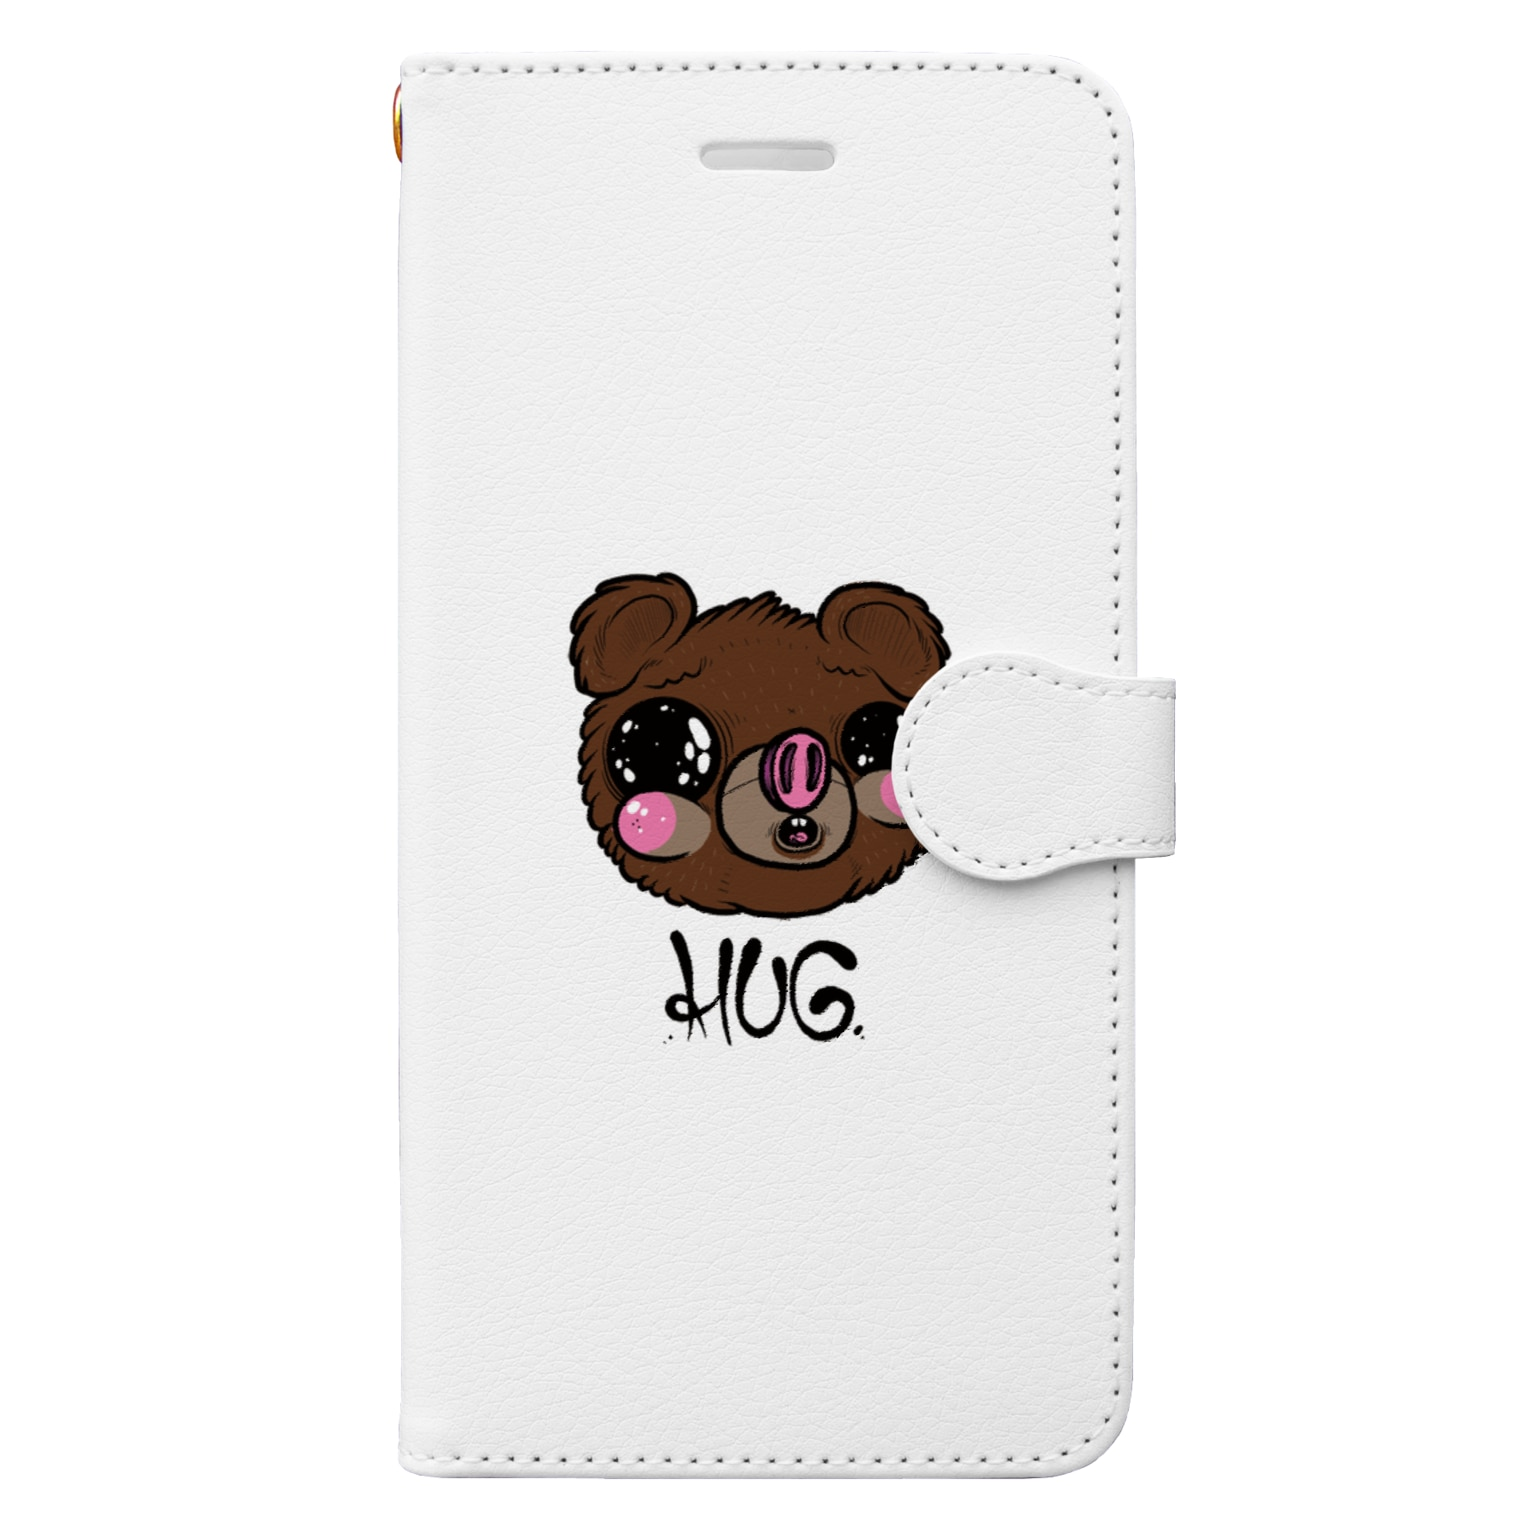 HUGオフォシャルショップのFualey White Book-style smartphone case